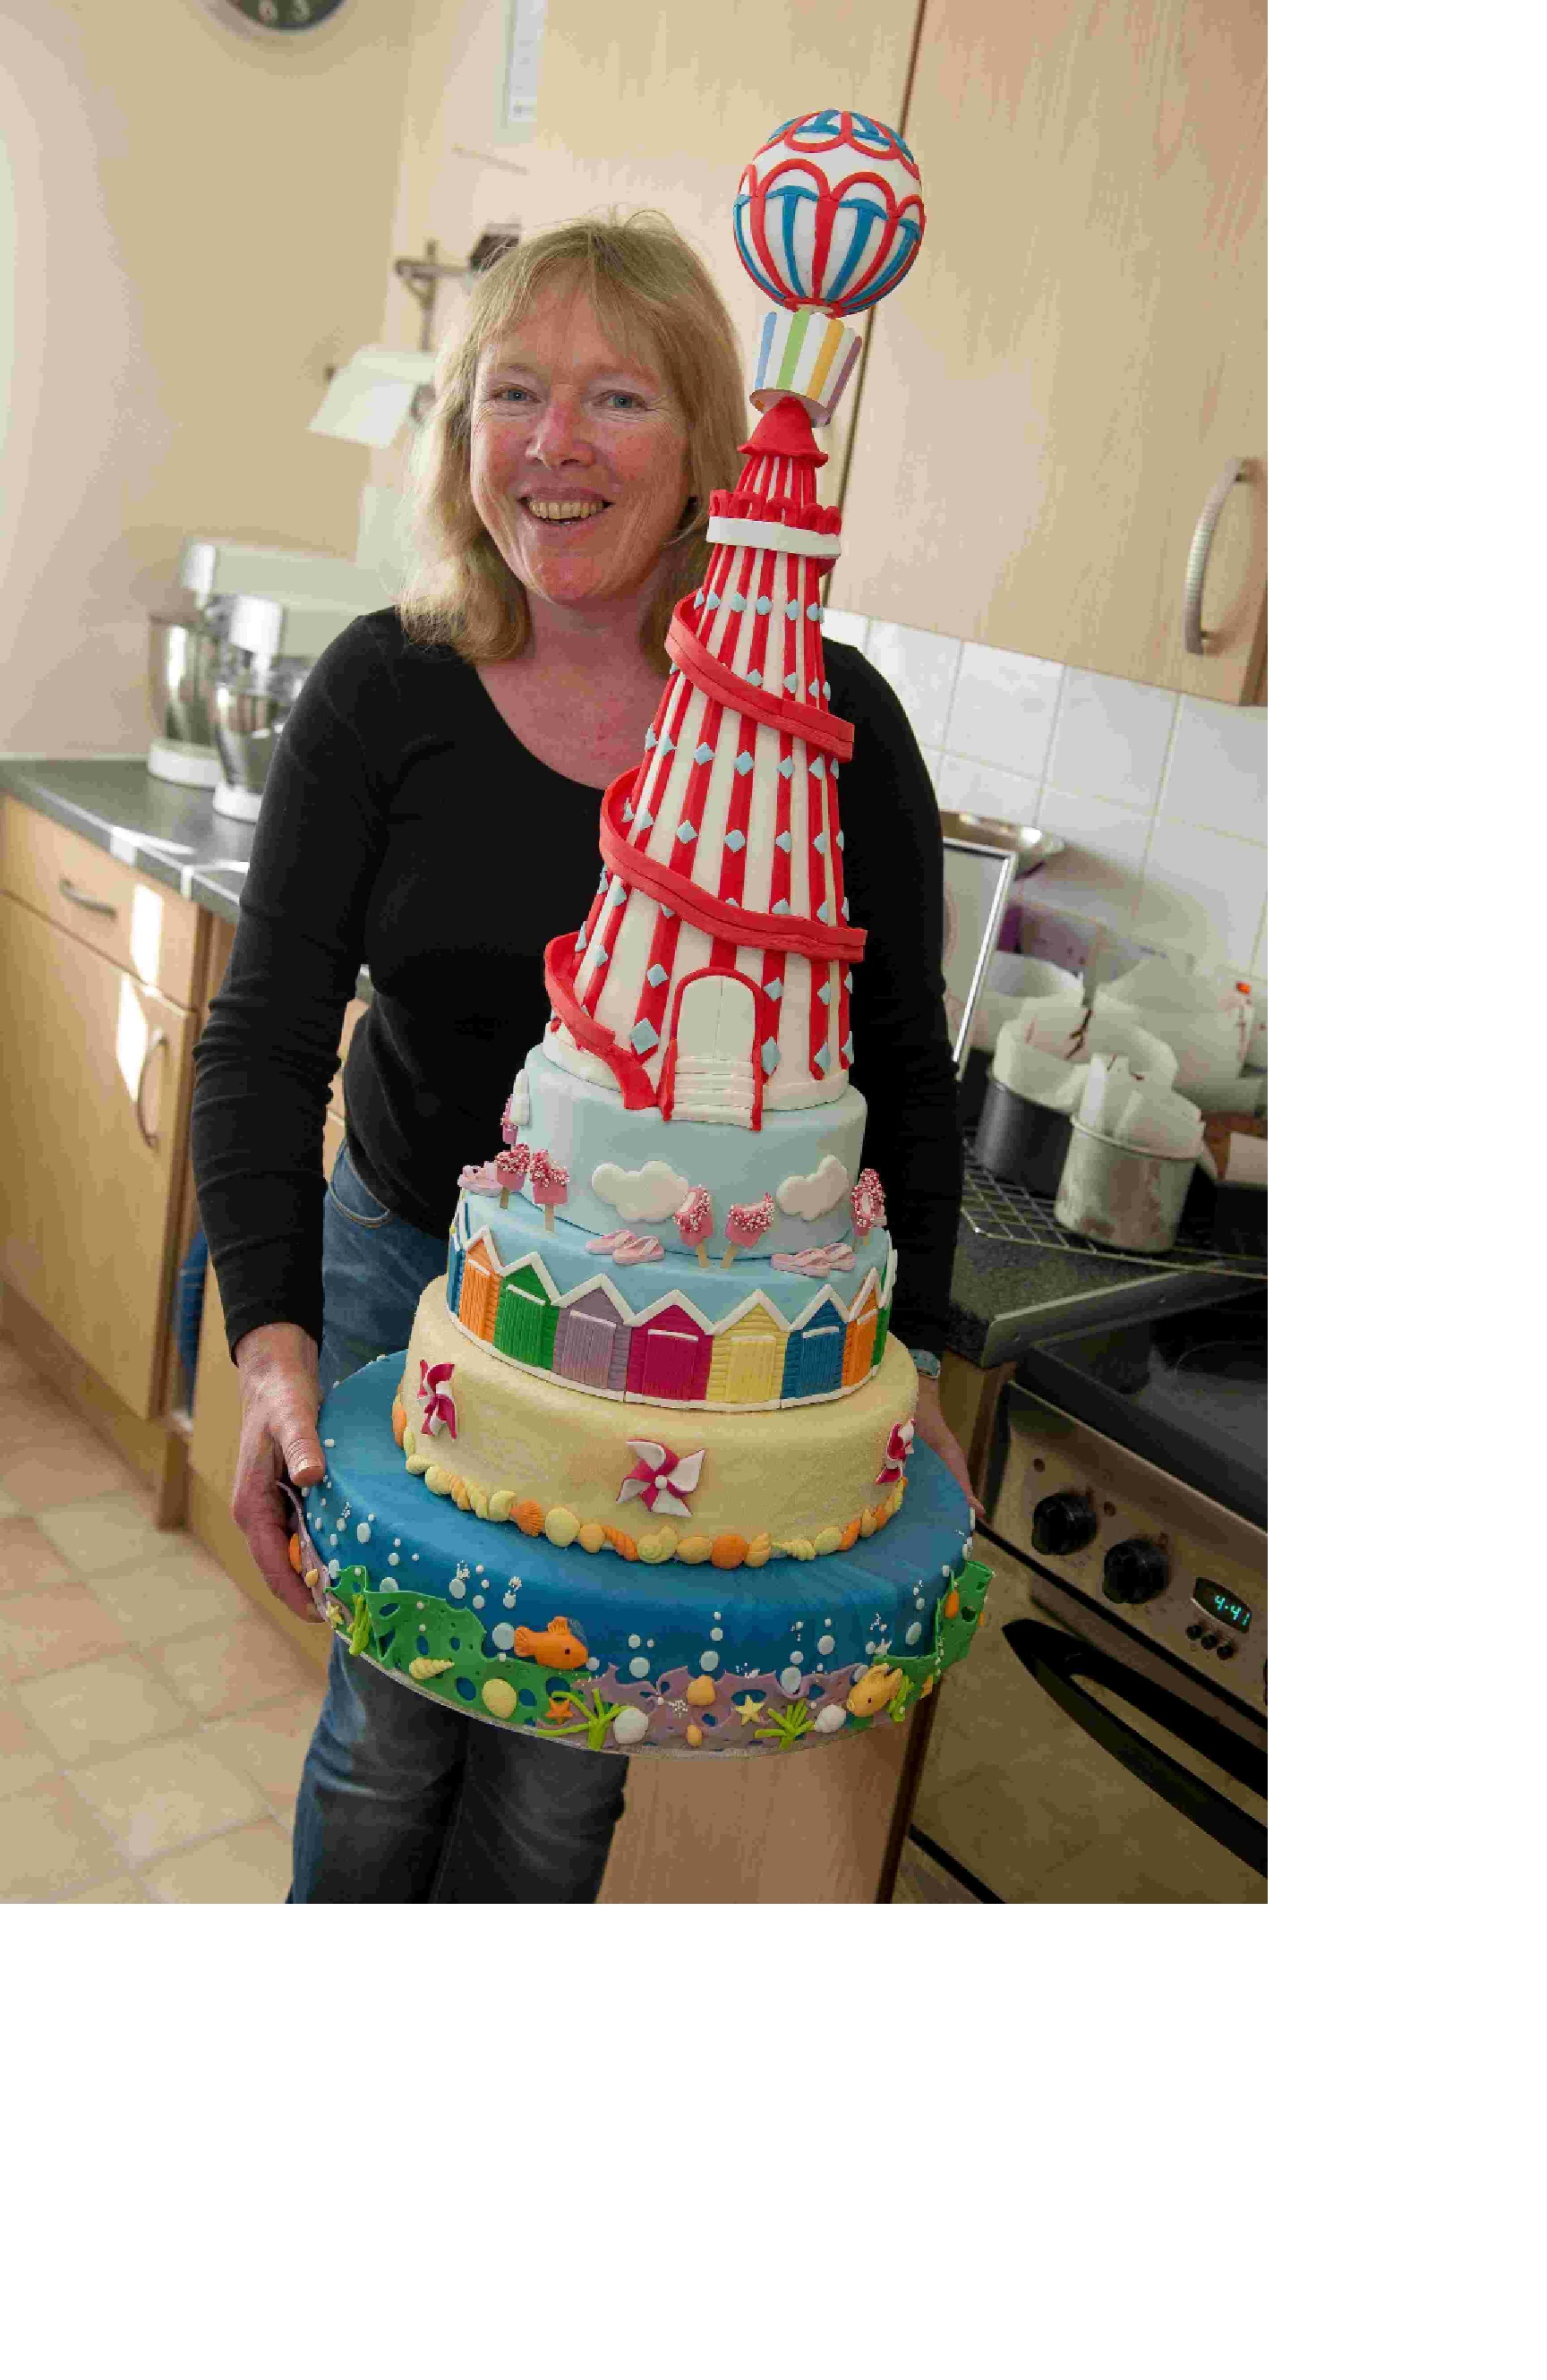 Cakemaker, Jill Chant, with her metre-high cake, which won the Showstopper class at the Southwest Cake and Bake Fest